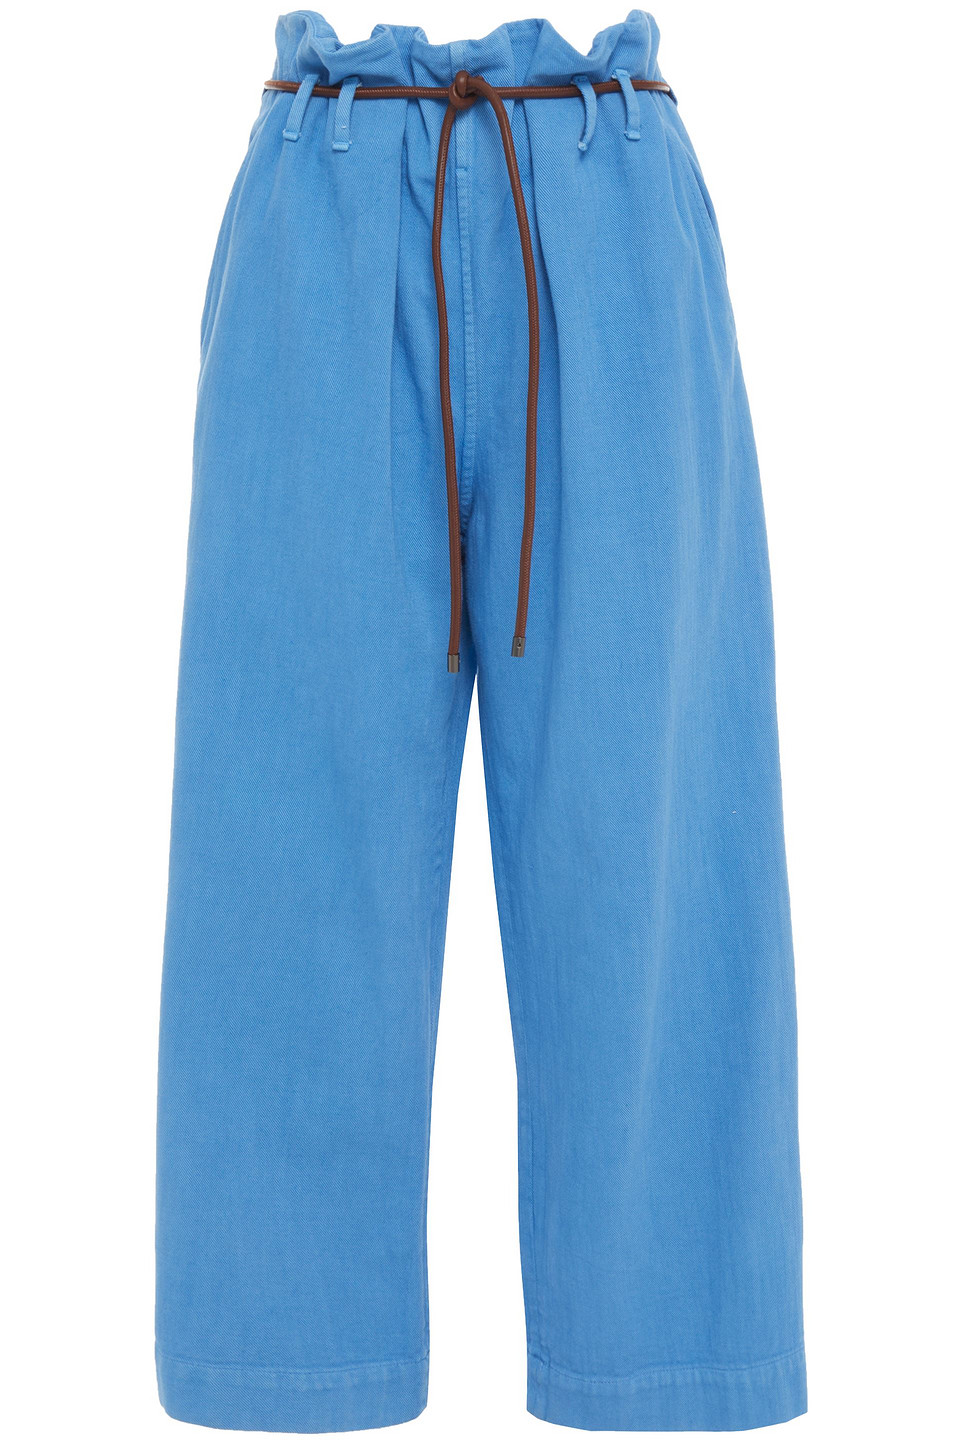 Brunello Cucinelli | Brunello Cucinelli Woman Cropped Leather-trimmed Faded High-rise Wide-leg Jeans Light Blue | Clouty